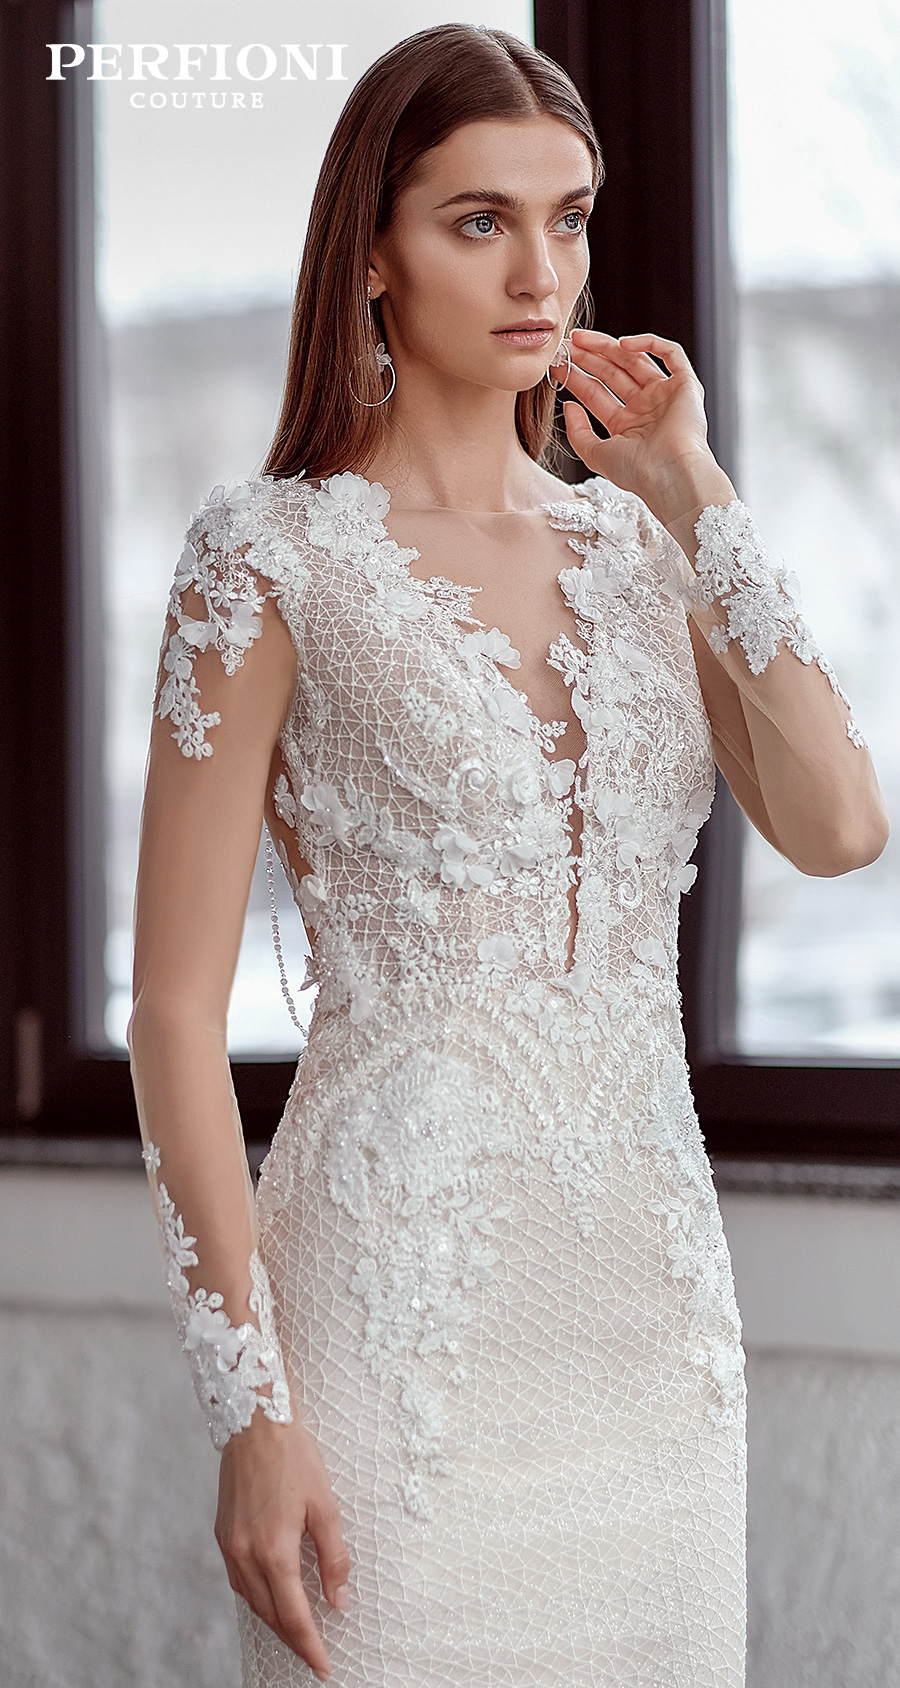 perfioni 2020 love season bridal long sleeves v neck full embellishment elegant sheath wedding dress jewellery cowl back medium train (wilow) mv zv